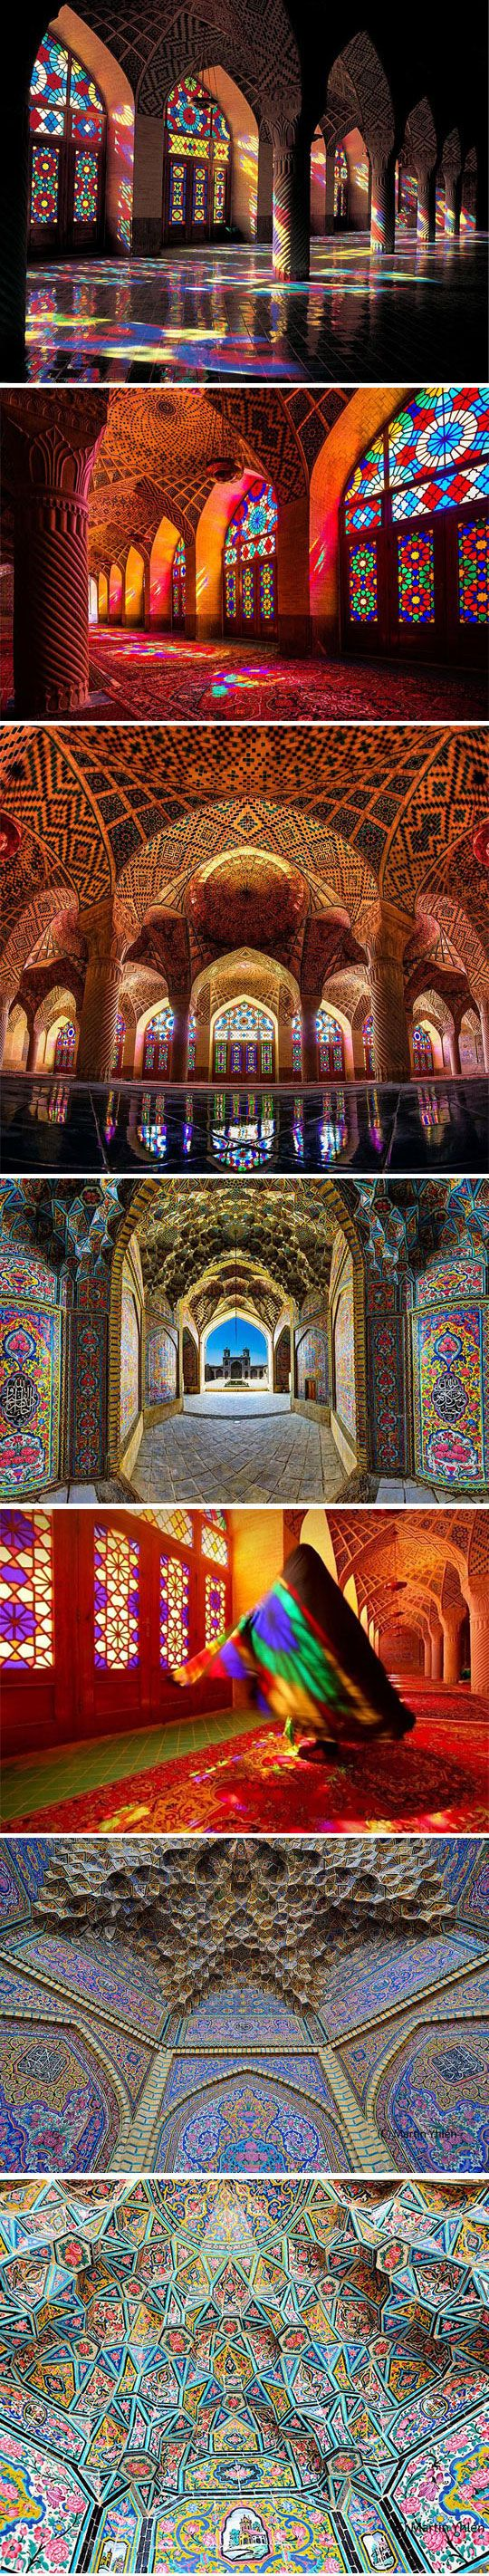 a stunning mosque illuminated with all of the colors of the